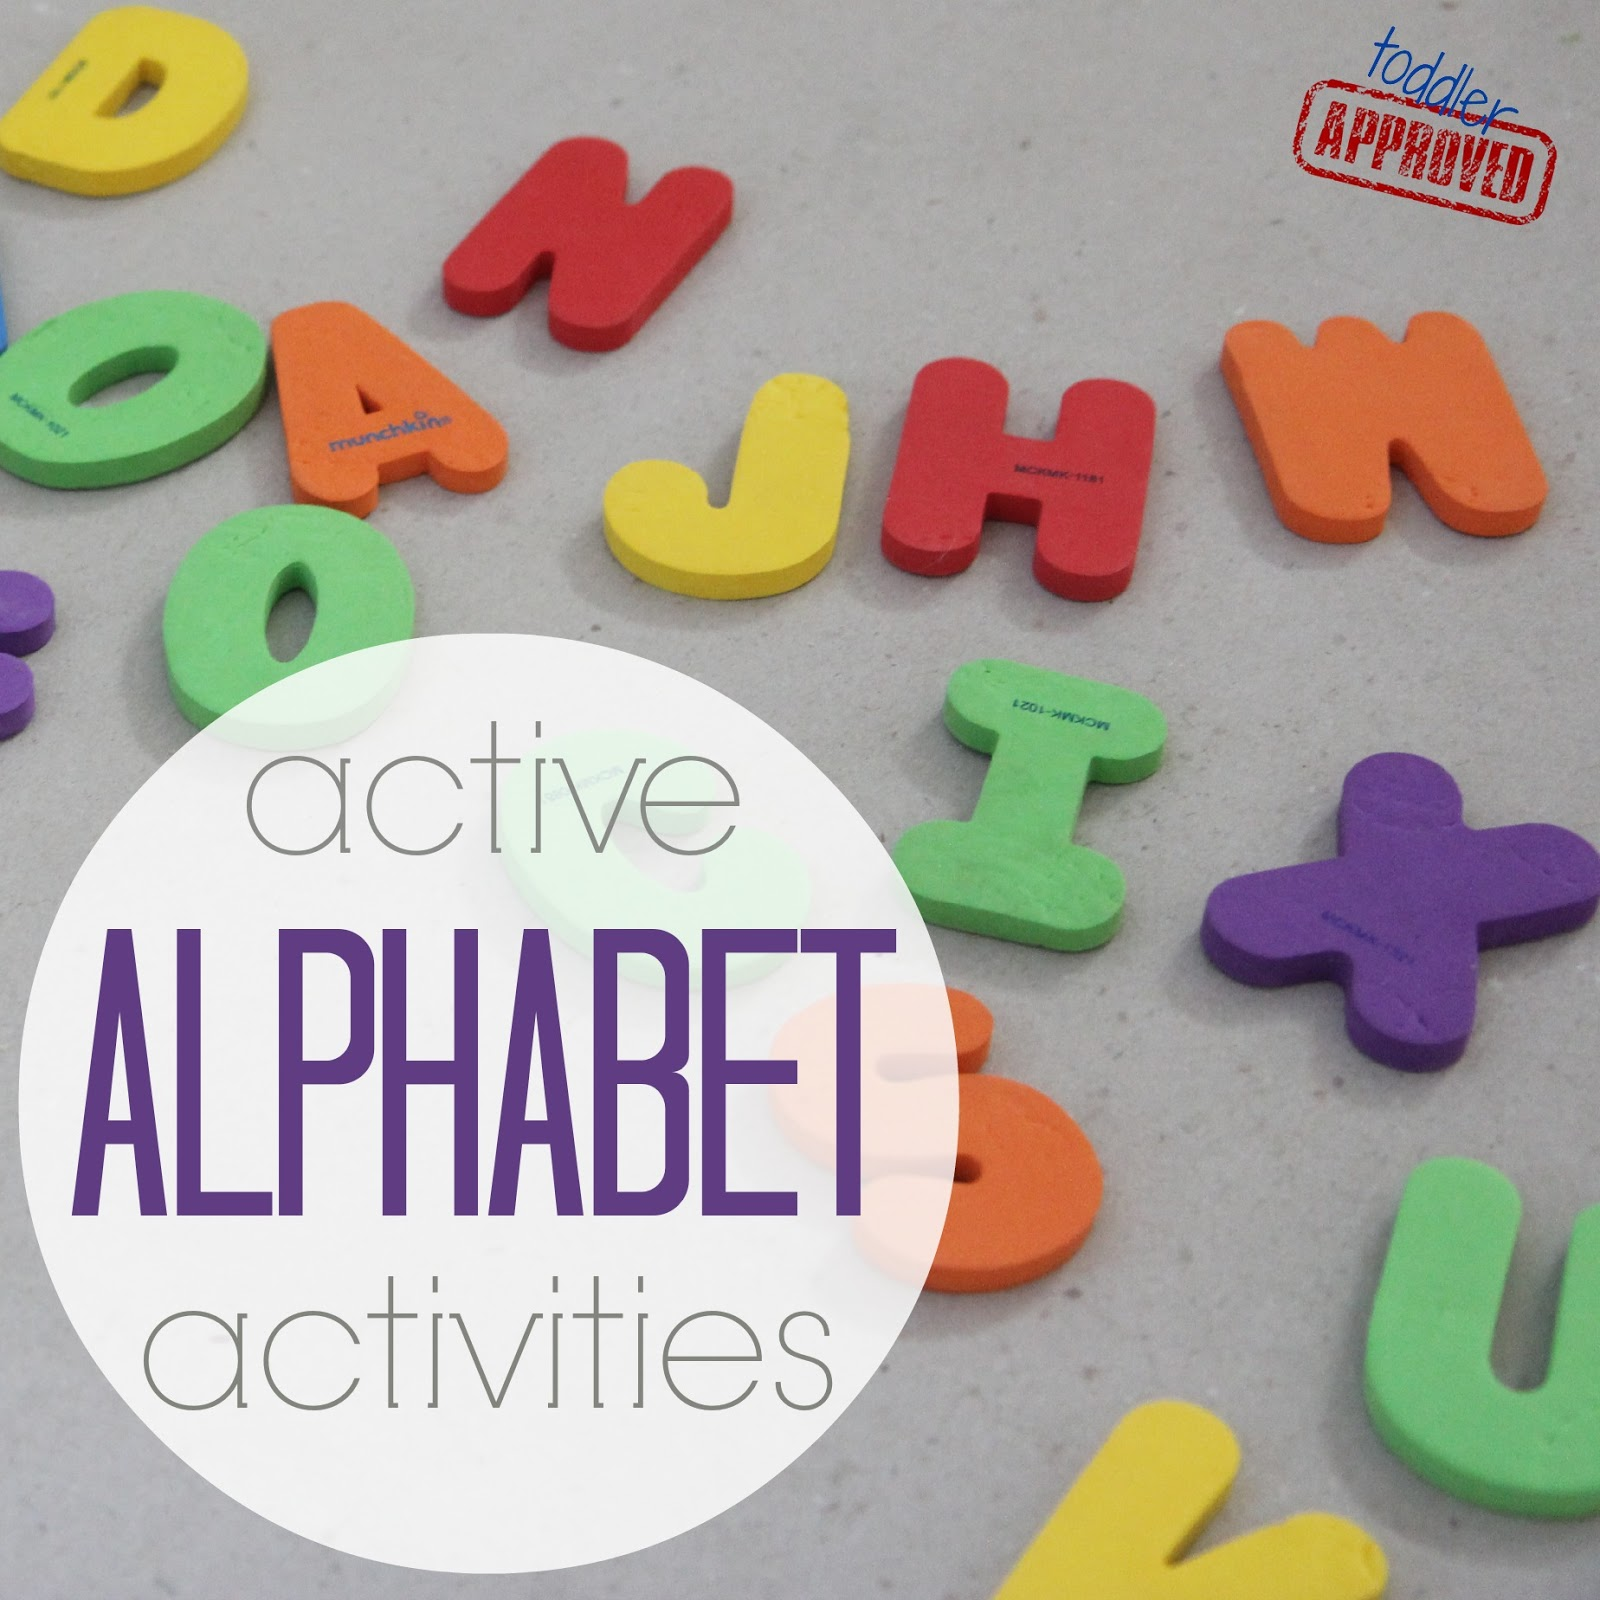 this week for the get ready for k through play series we are talking about the letters of the alphabet and phonics